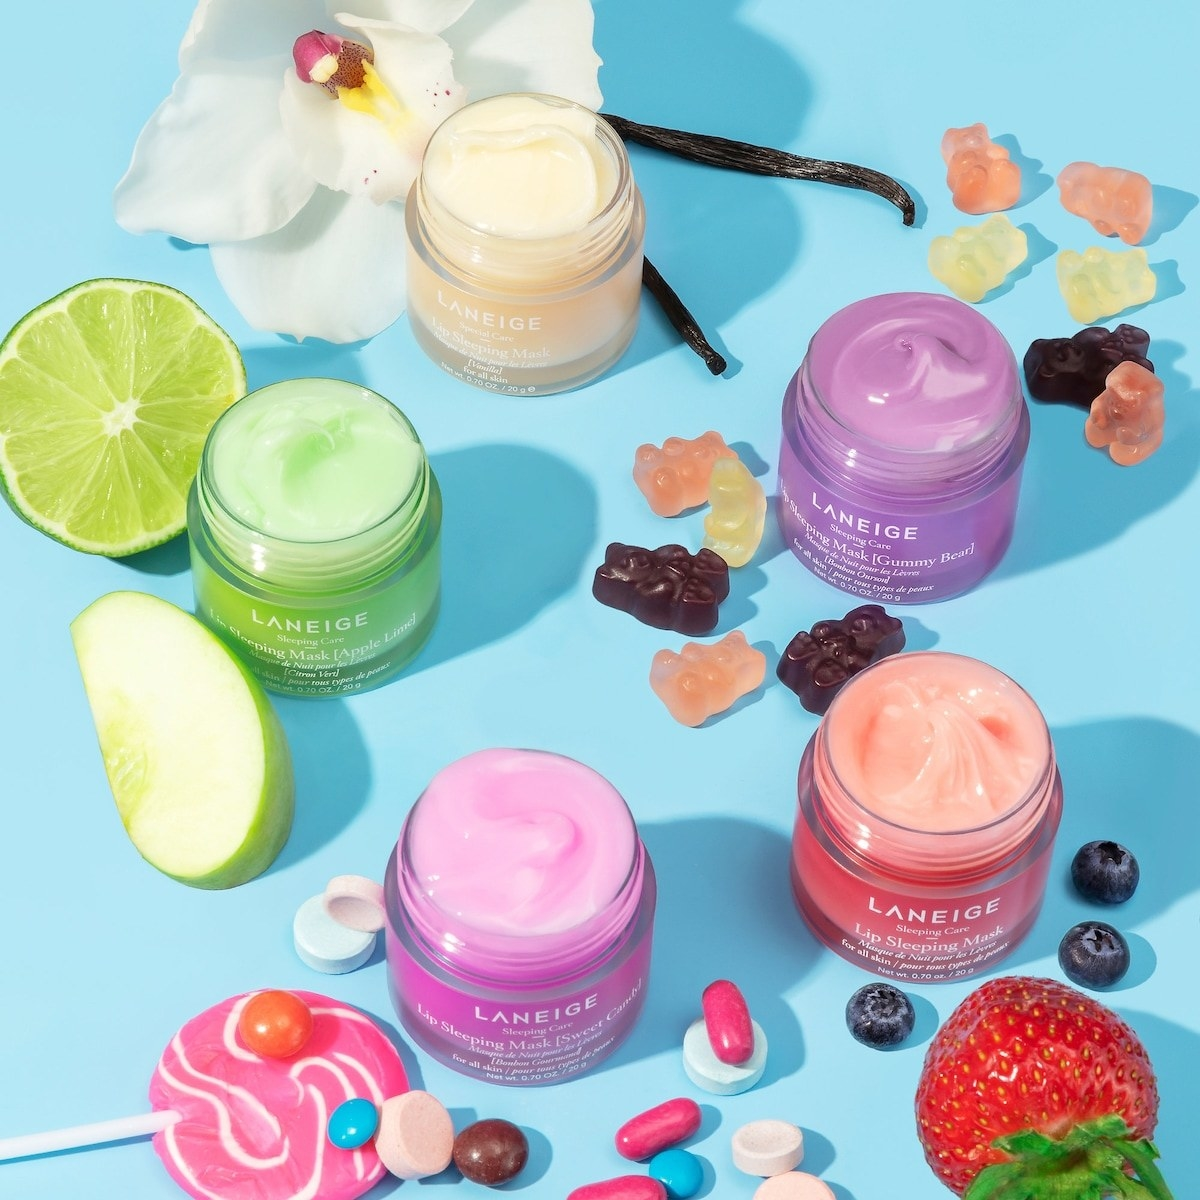 Laneige sleeping mask in a variety of scents styled on a table with fruits and candies